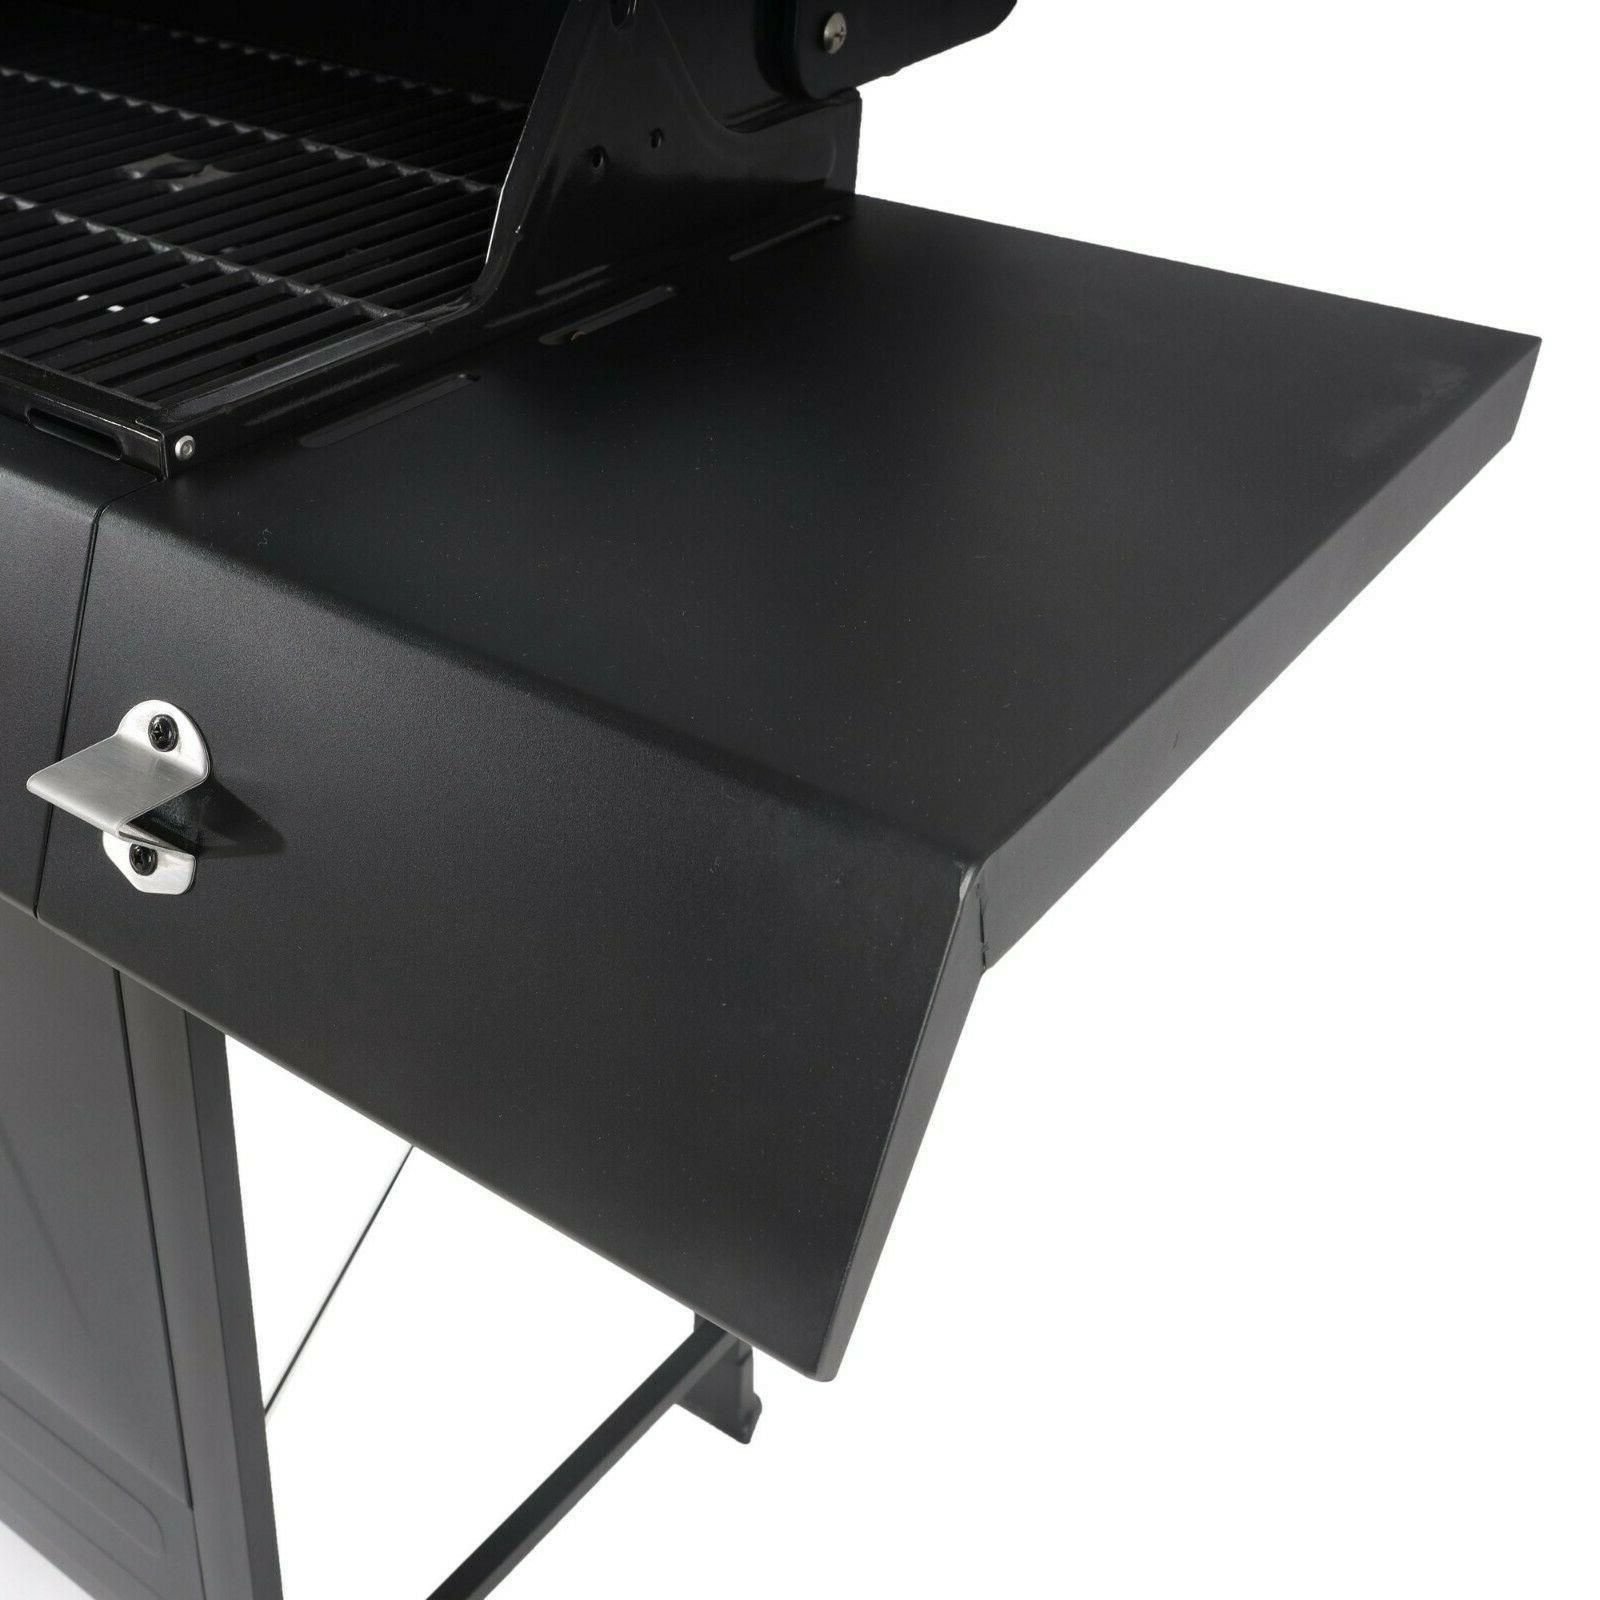 Best Gas Grill 4 Burner Portable Barbecue